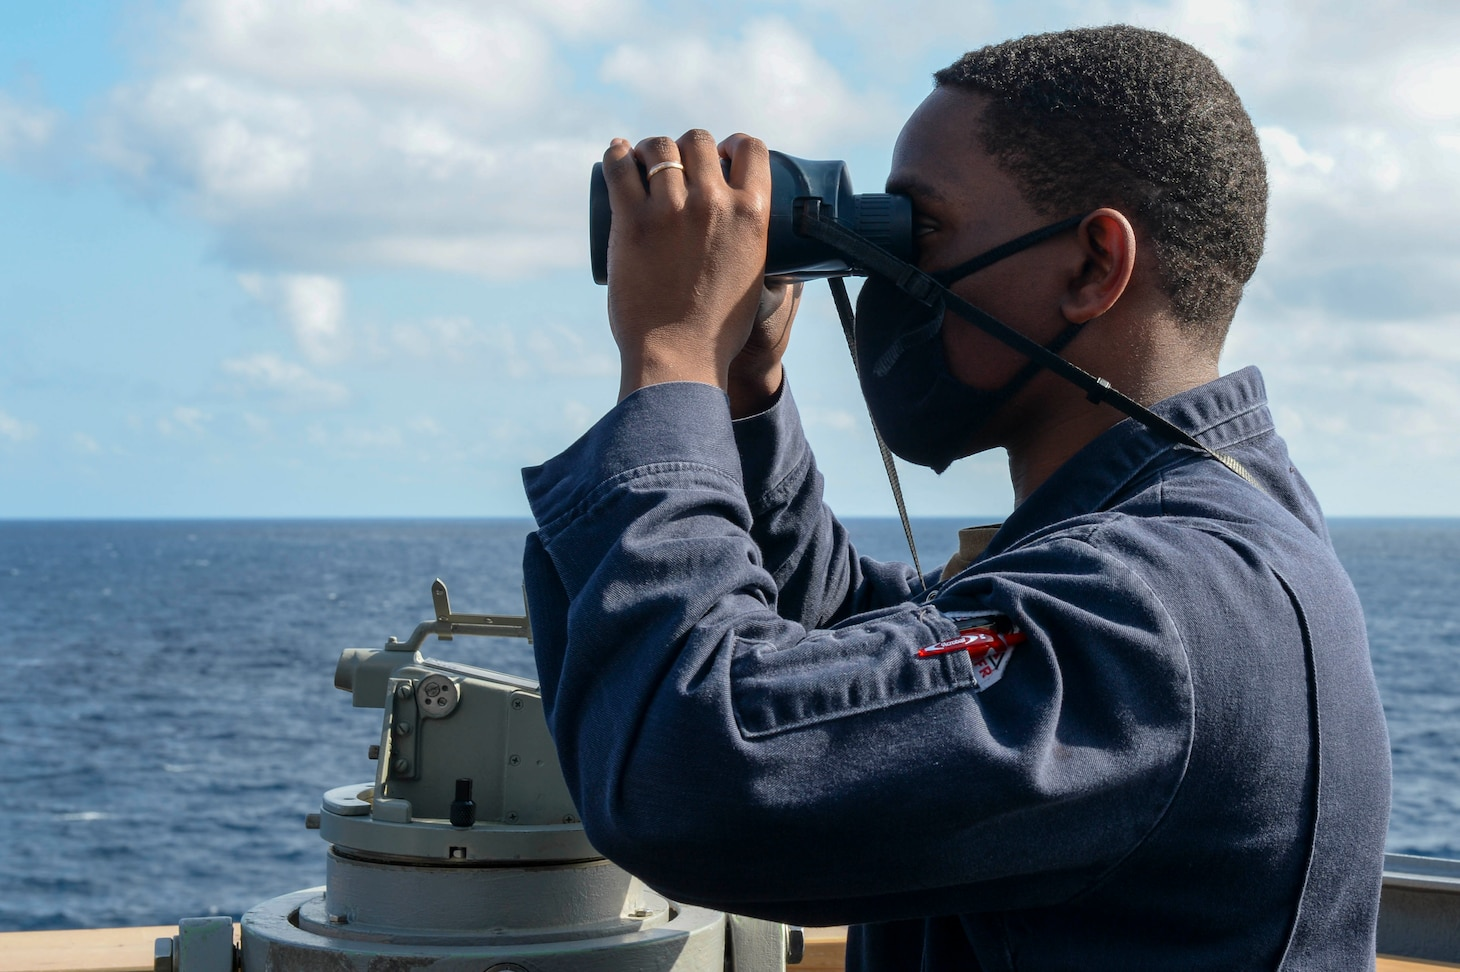 SOUTH CHINA SEA (Feb. 17, 2021) U.S. Navy Ensign Ryan Simpson, from Baltimore, looks through a pair of binoculars on the bridge wing as the guided-missile destroyer USS Russell (DDG 59) conducts routine underway operations. Russell is forward-deployed to the U.S. 7th Fleet area of operations in support of a free and open Indo-Pacific. (U.S. Navy photo by Mass Communication Specialist 3rd Class Wade Costin)